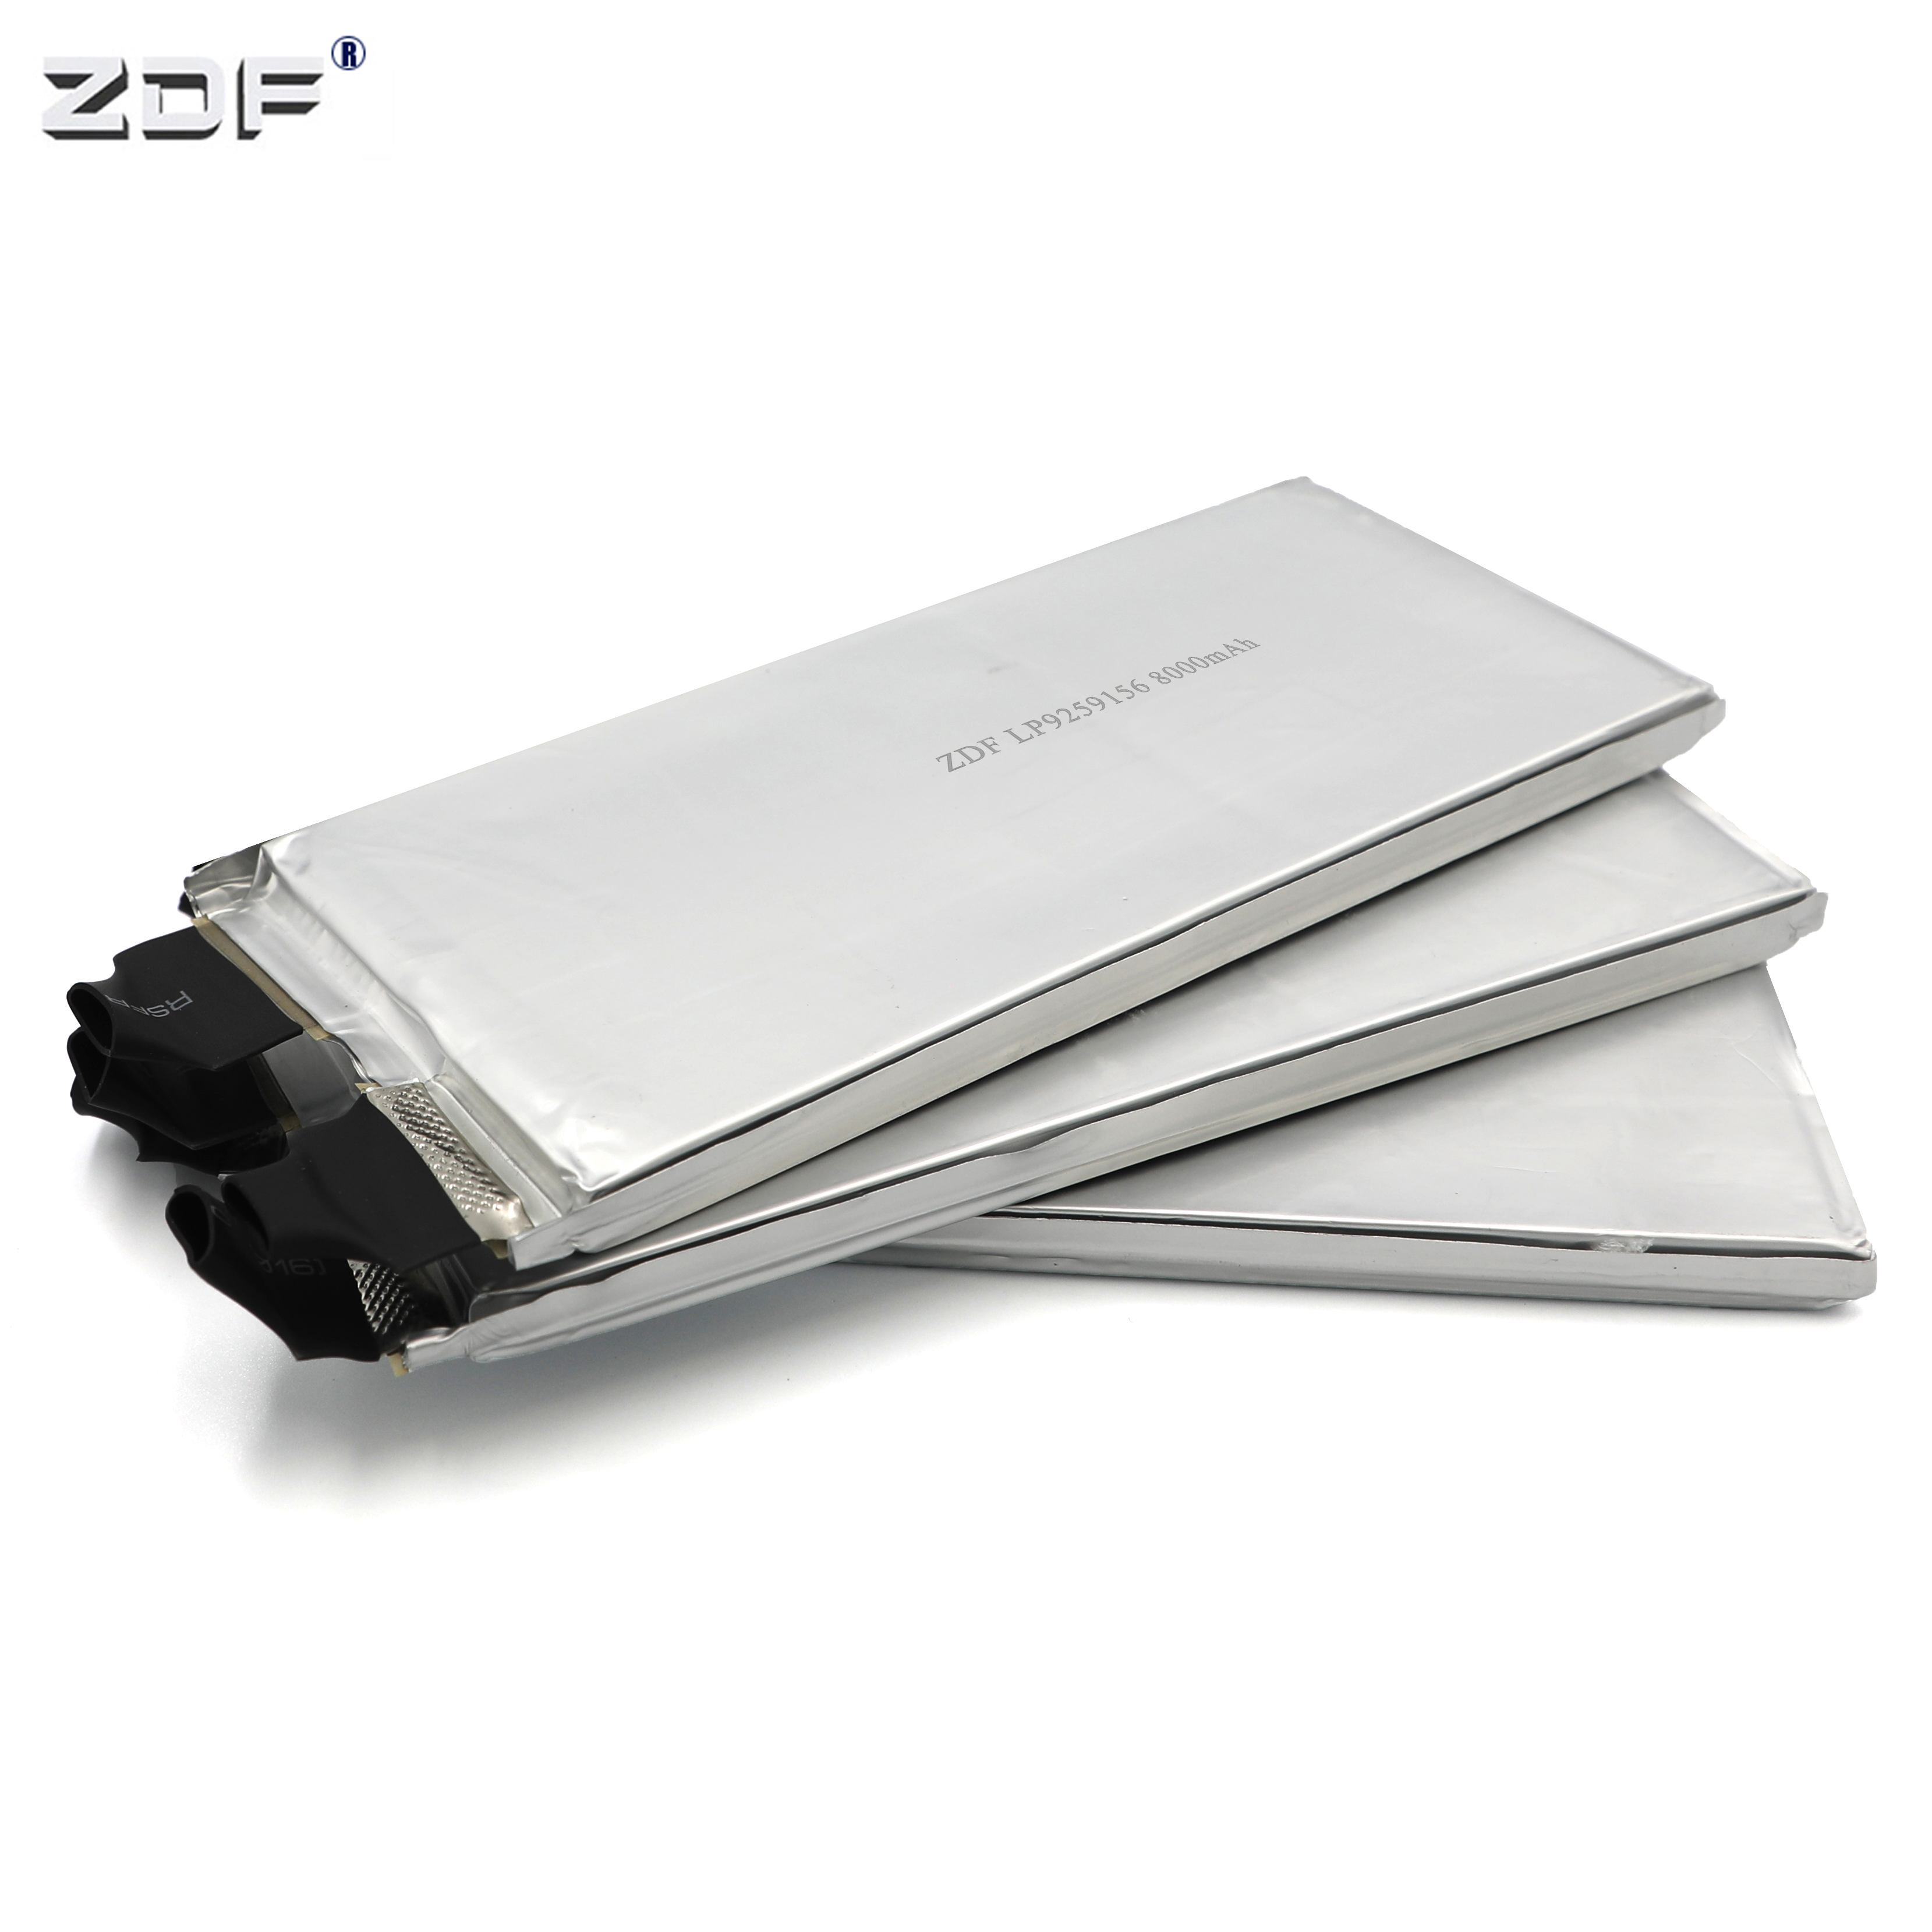 ZDF 3.7V <font><b>5000mAh</b></font> 6000mAh 8000mah 10000mAh 12000mAh 16000mAh 25C 35C 50C <font><b>lipo</b></font> battery cell for diy RC UAV Drone 2S 3S 4S <font><b>5S</b></font> 6S image